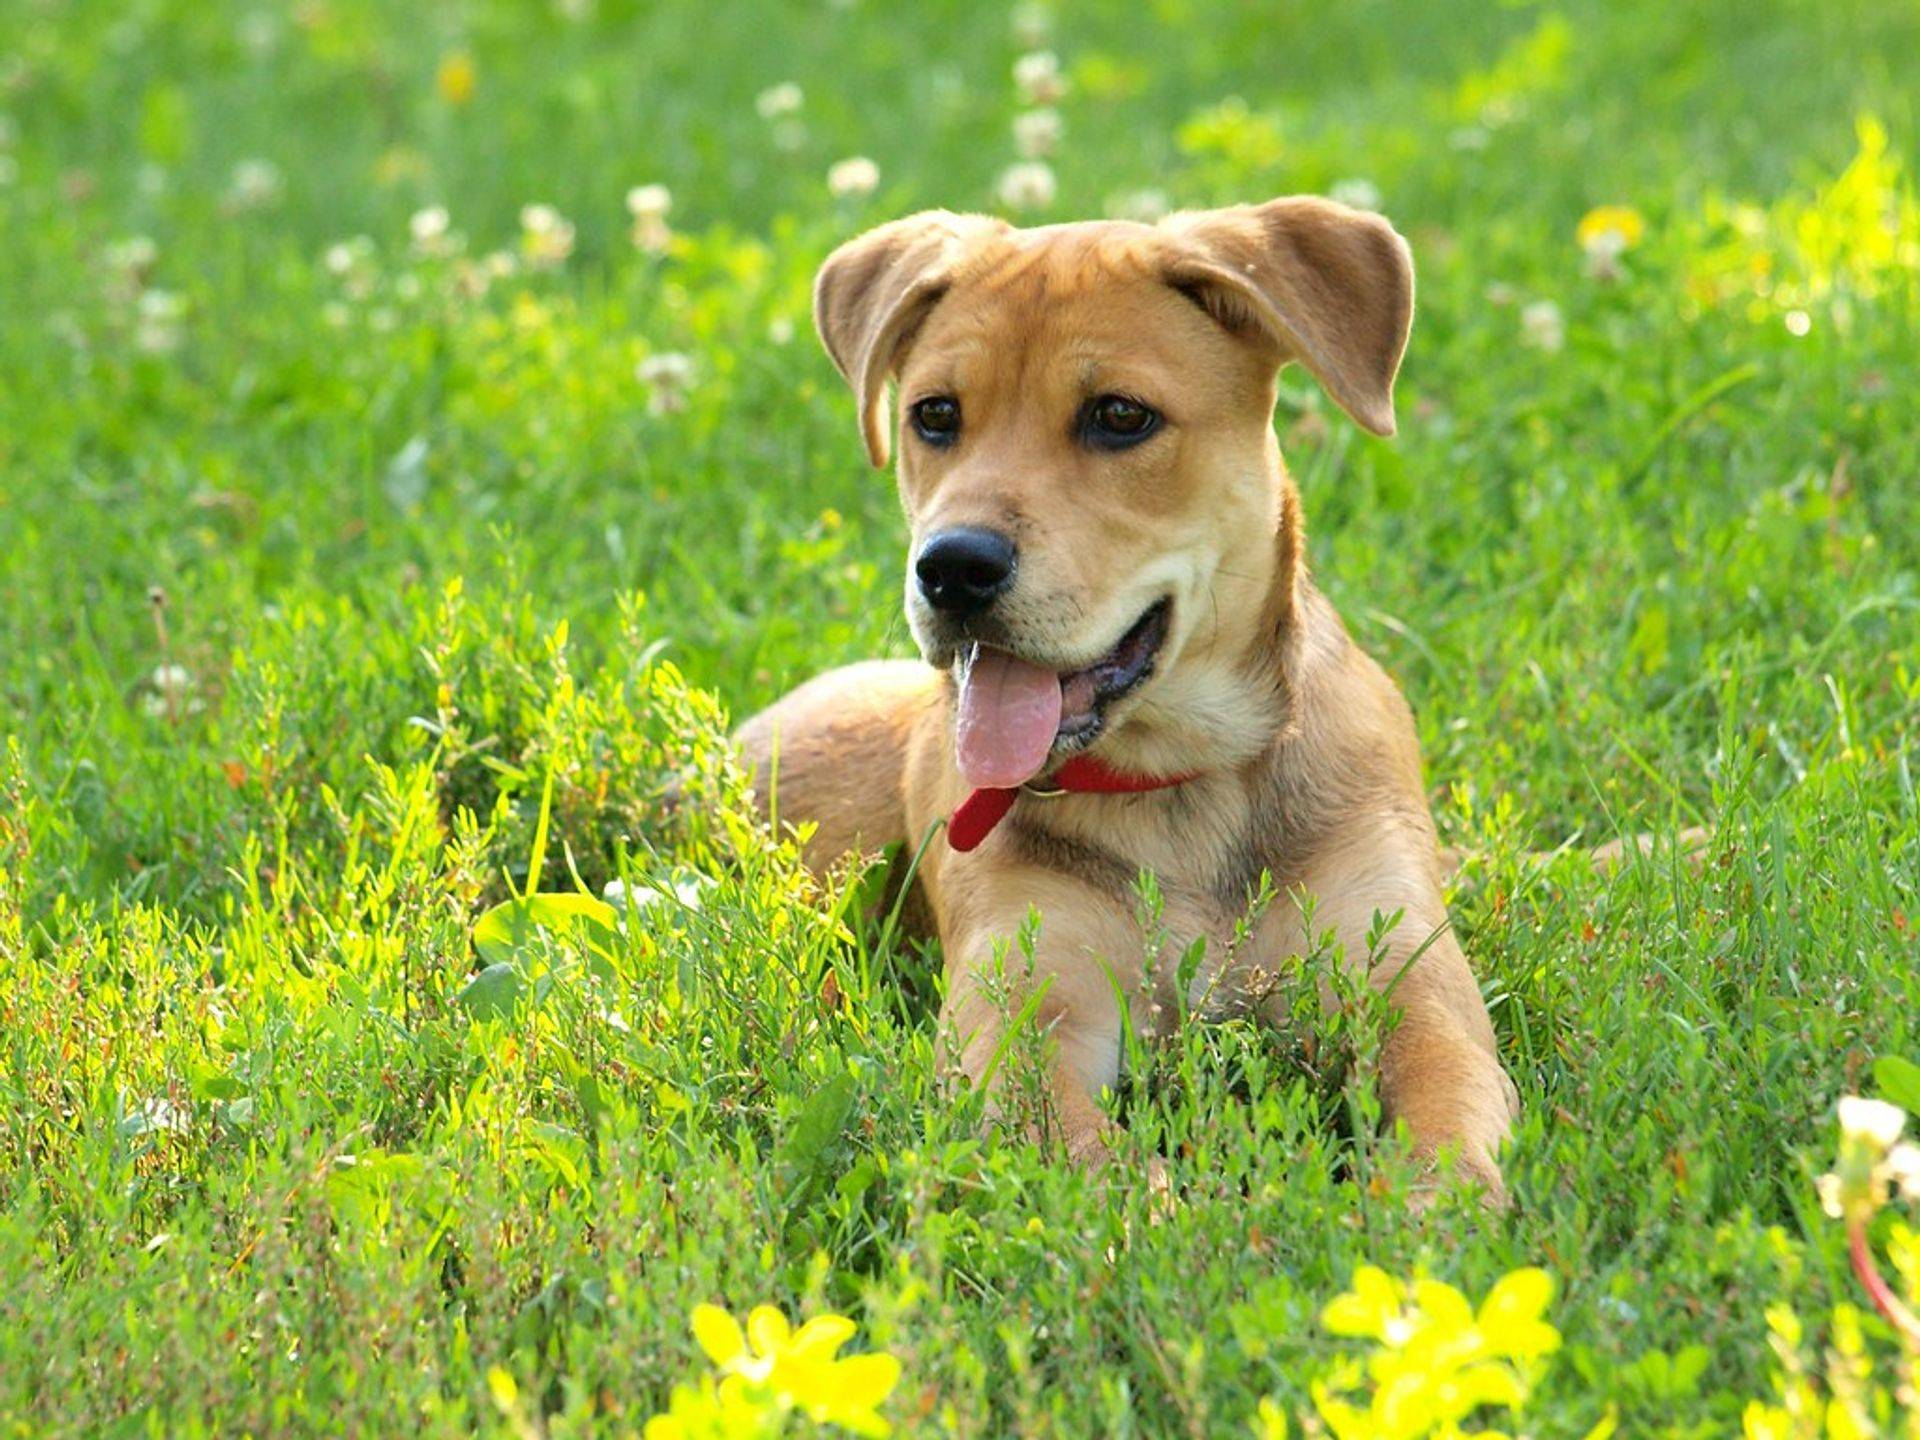 Environment has a huge impact on canine behaviour